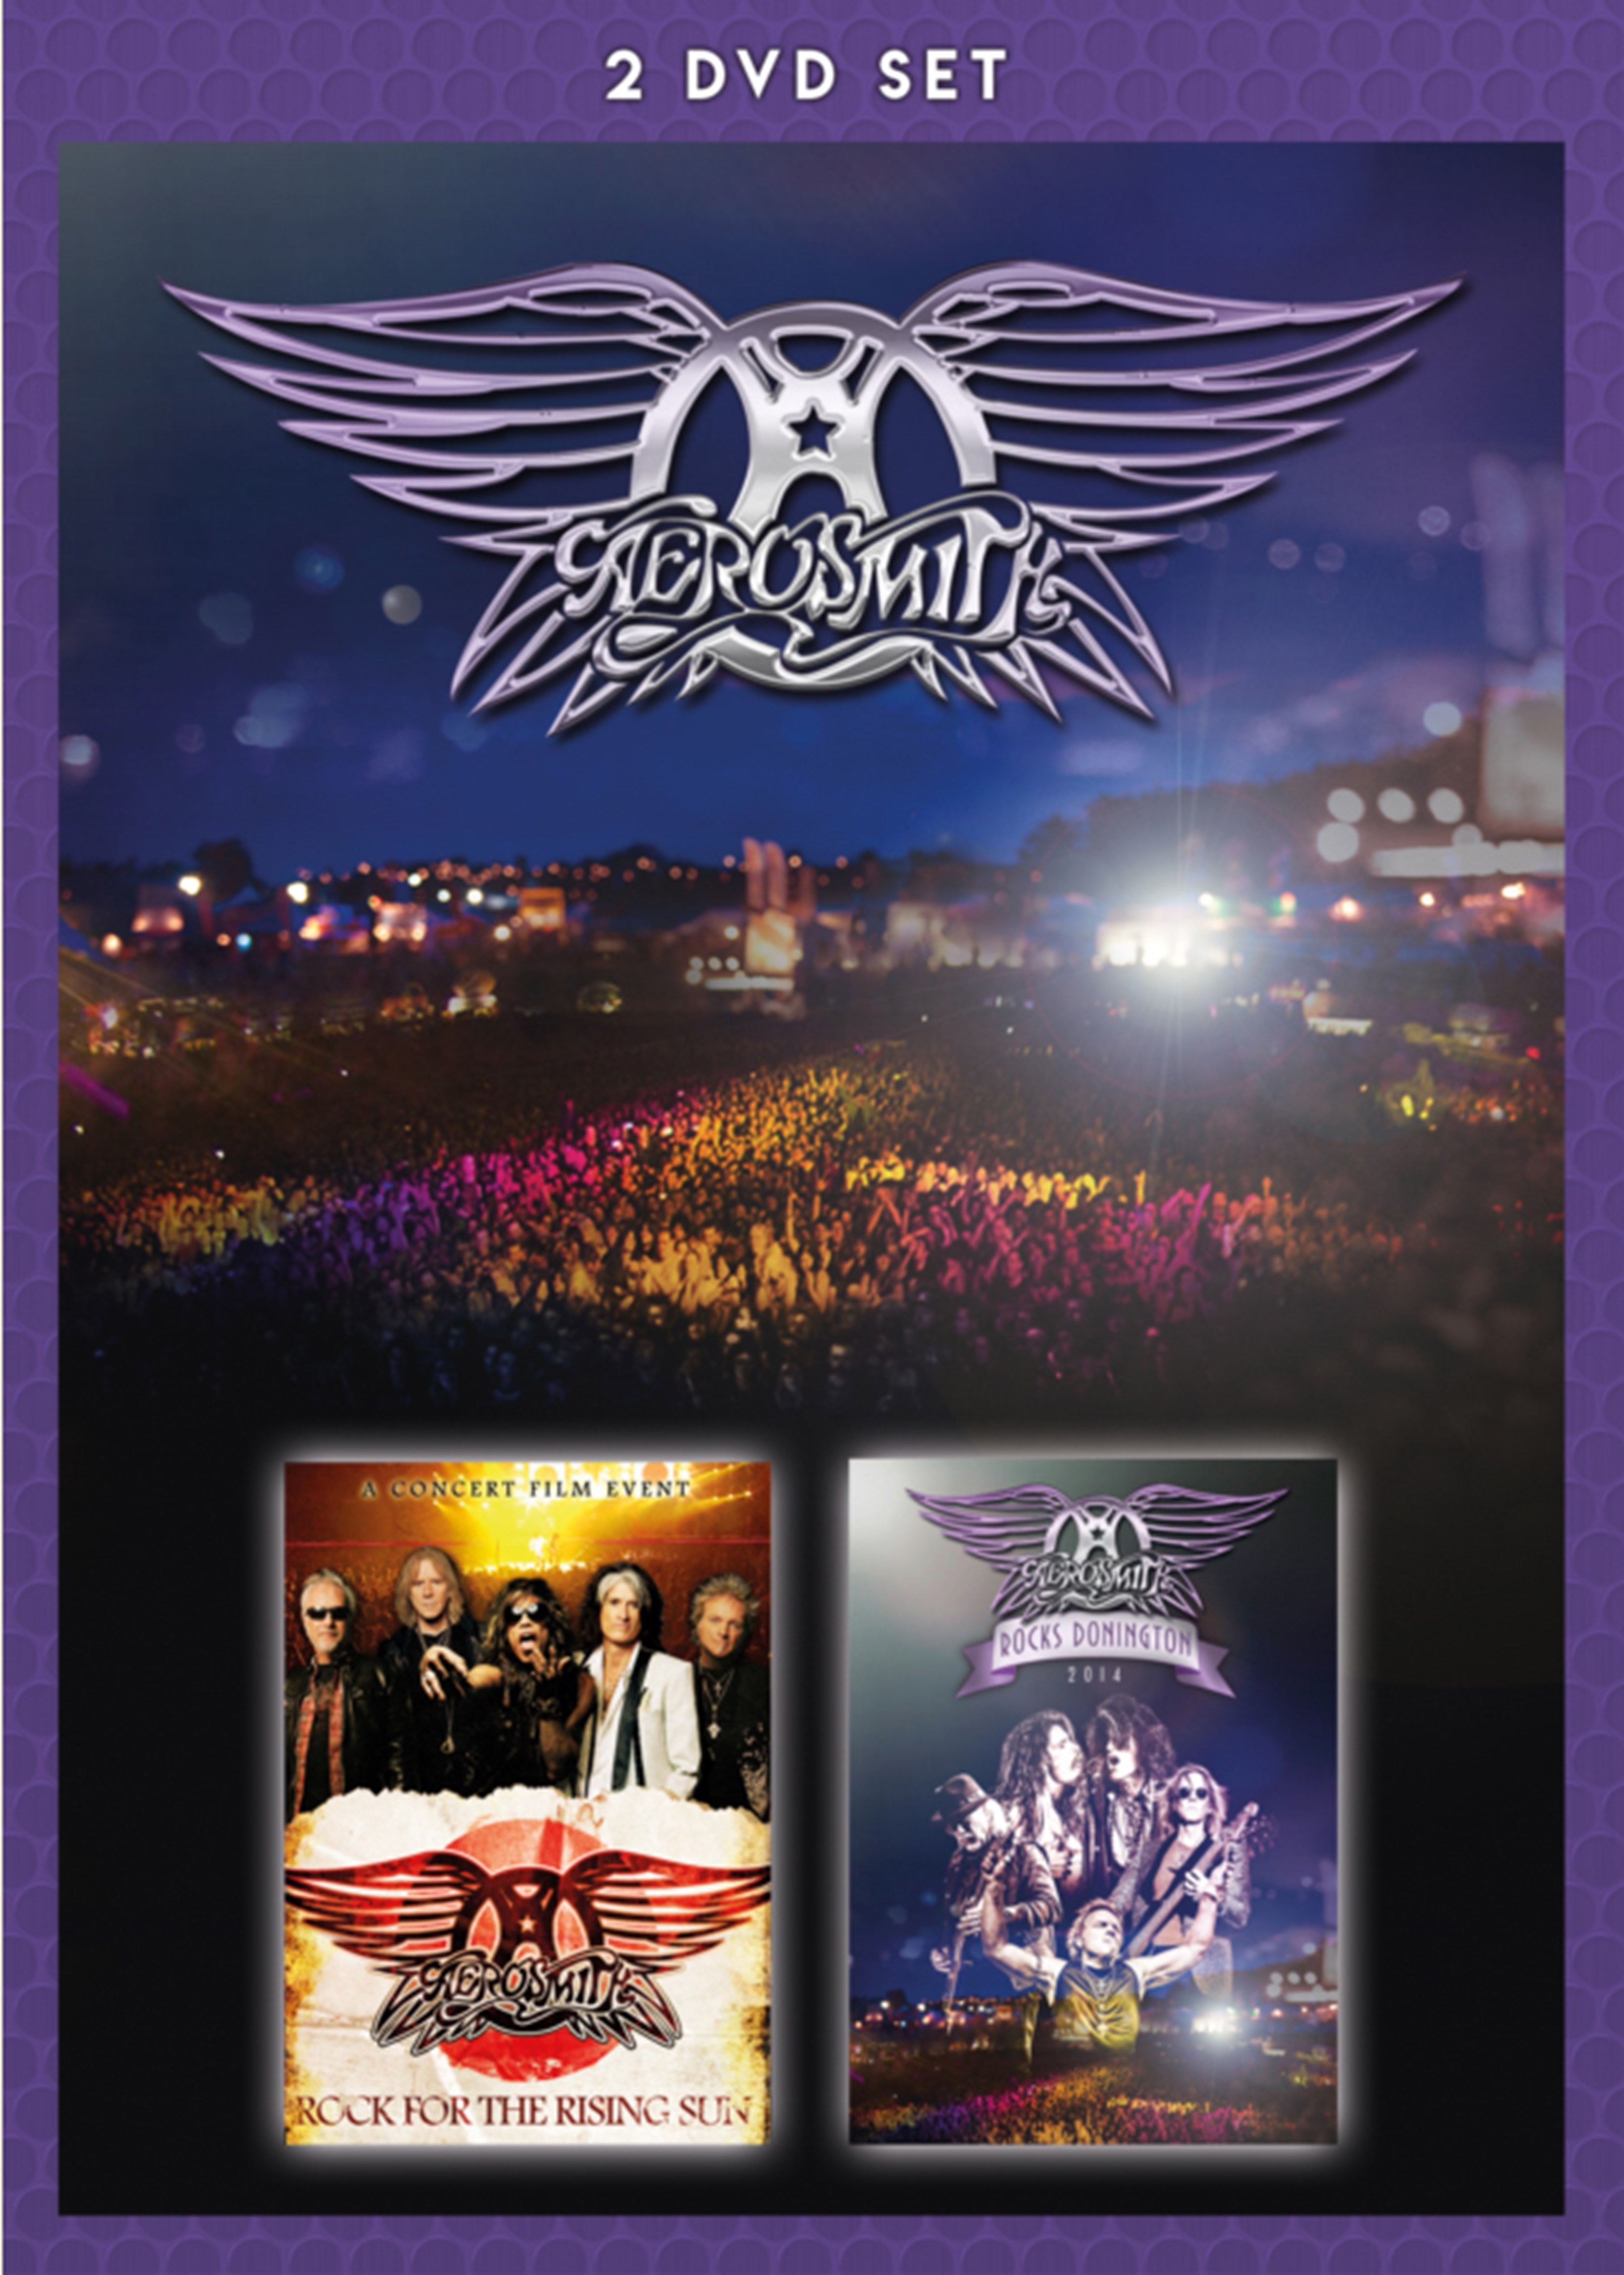 Aerosmith Rocks Donington/Aerosmith: Rock for the Rising Sun - 1